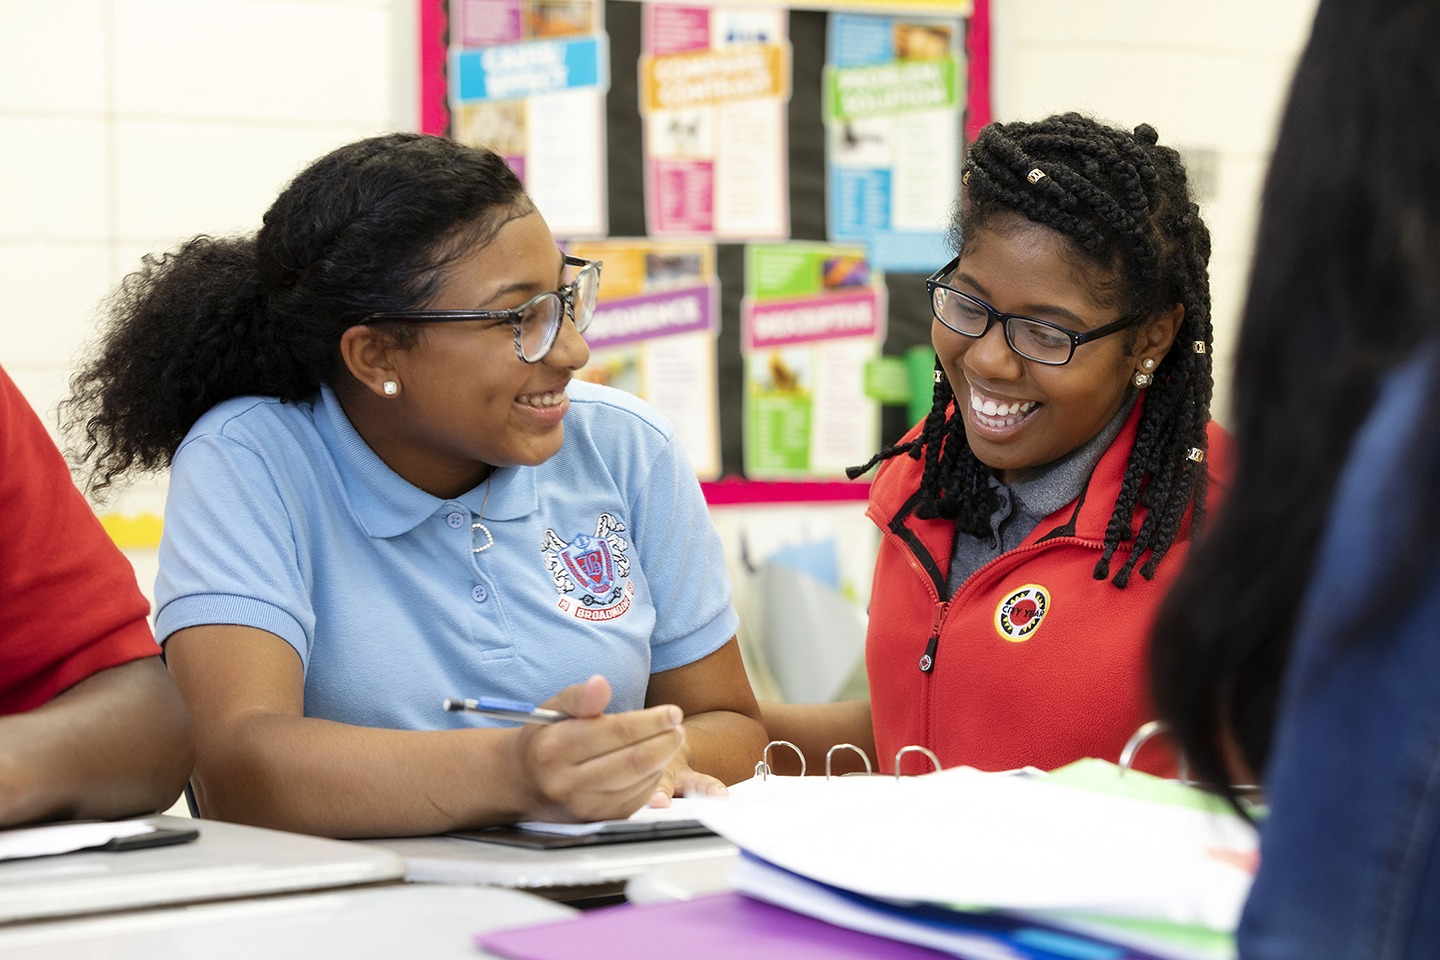 a student smiles and looks at an AmeriCorps member as they sit together at a table doing work